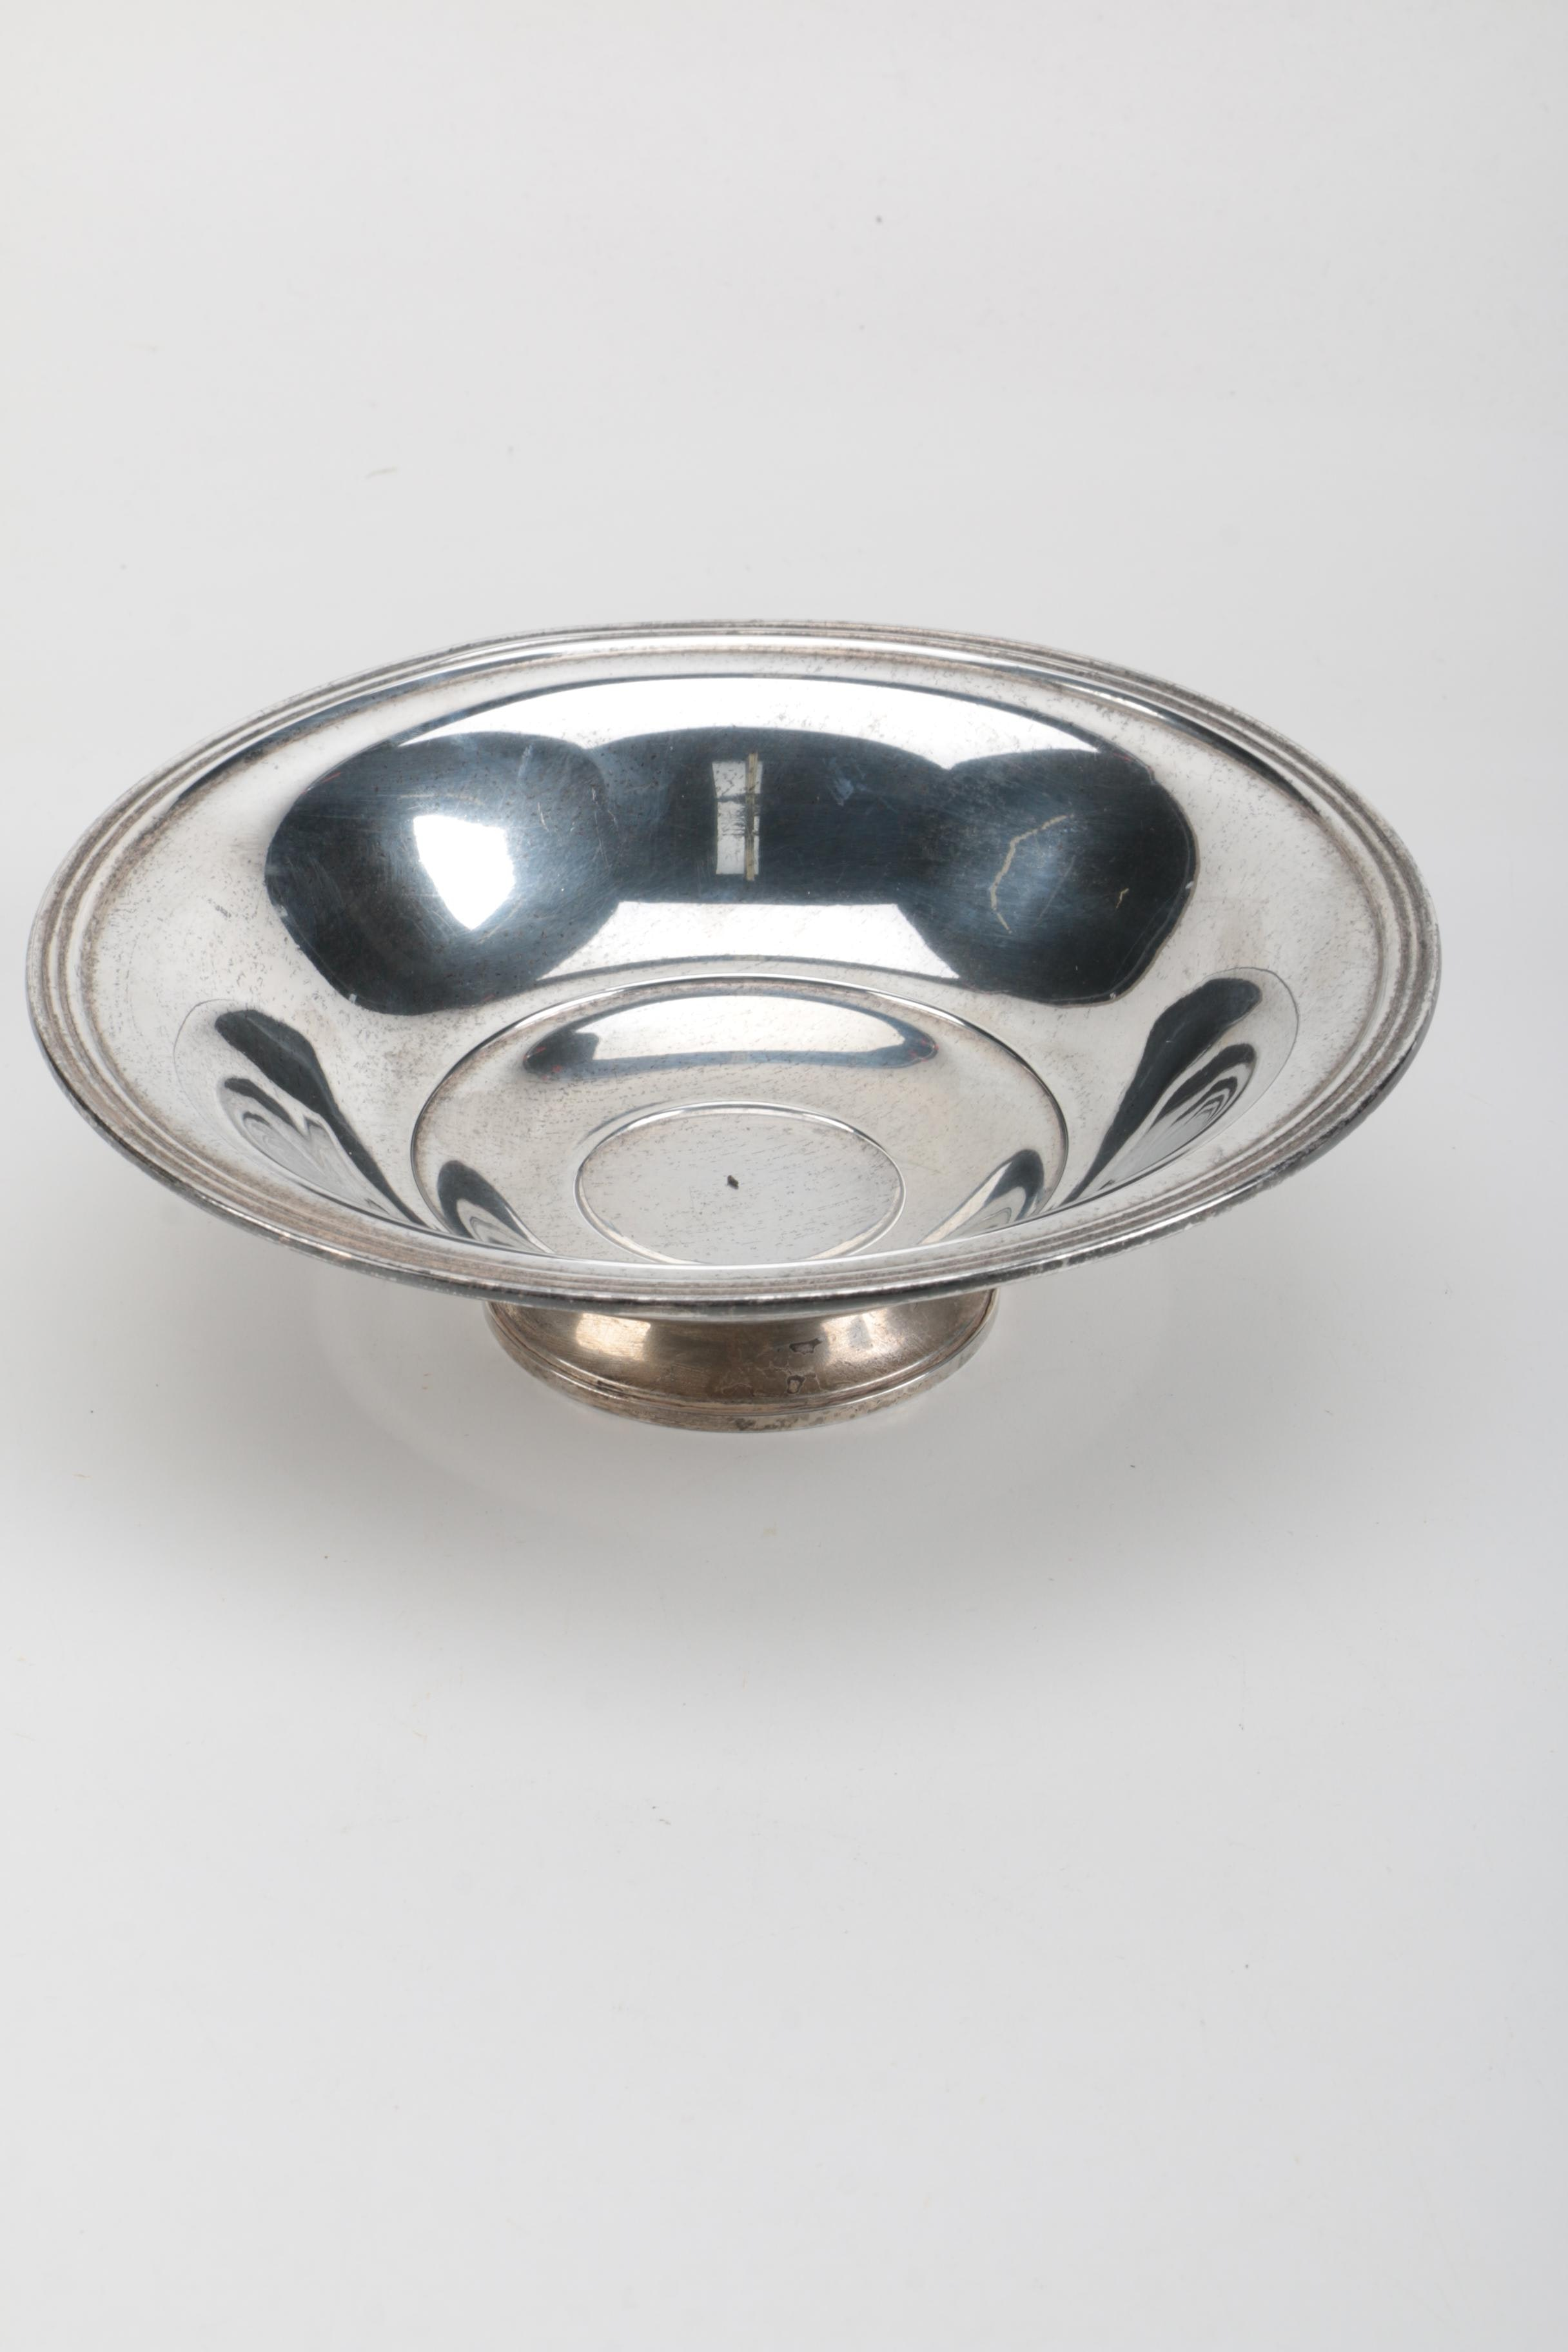 Wm. Rogers Mfg. Co. Weighted Sterling Silver Bowl